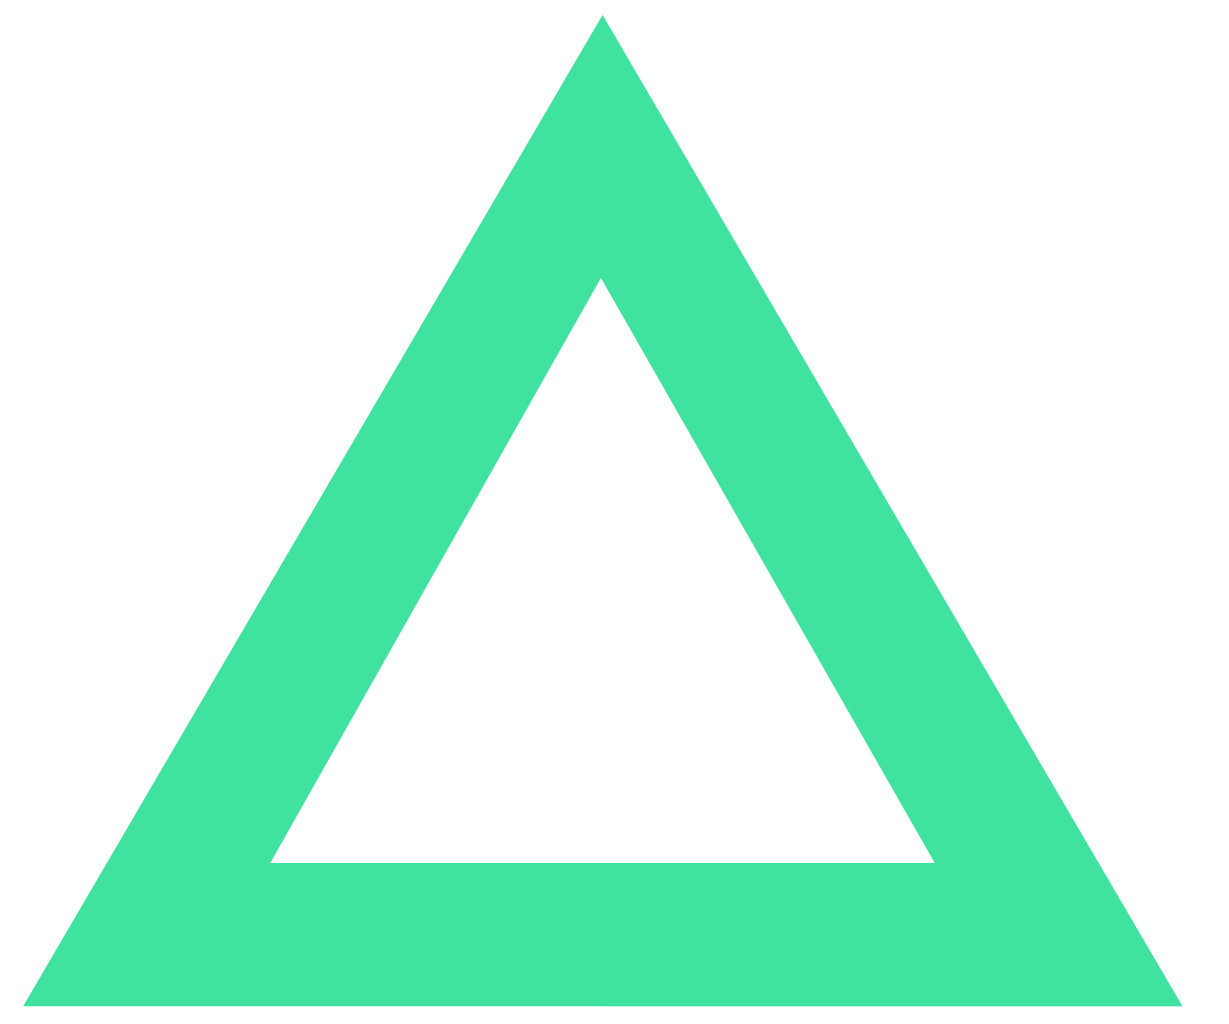 Green Triangle Transparent Background 16922